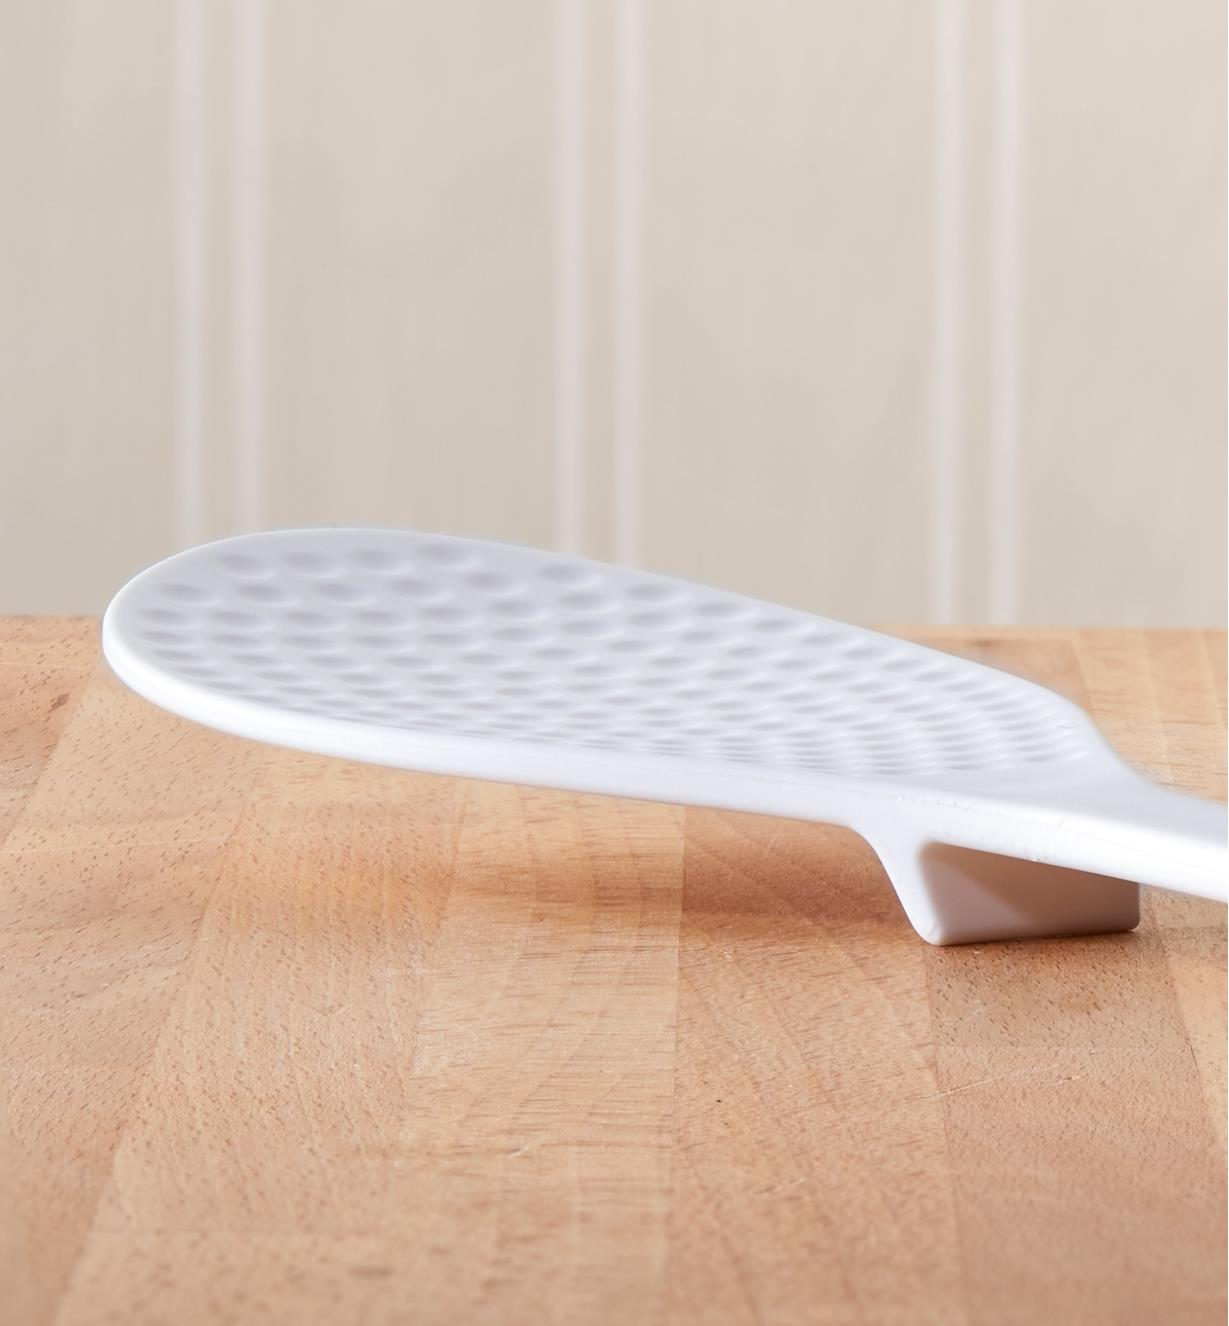 Rice paddle on a wooden counter, with a small foot on the underside raising the end off the countertop